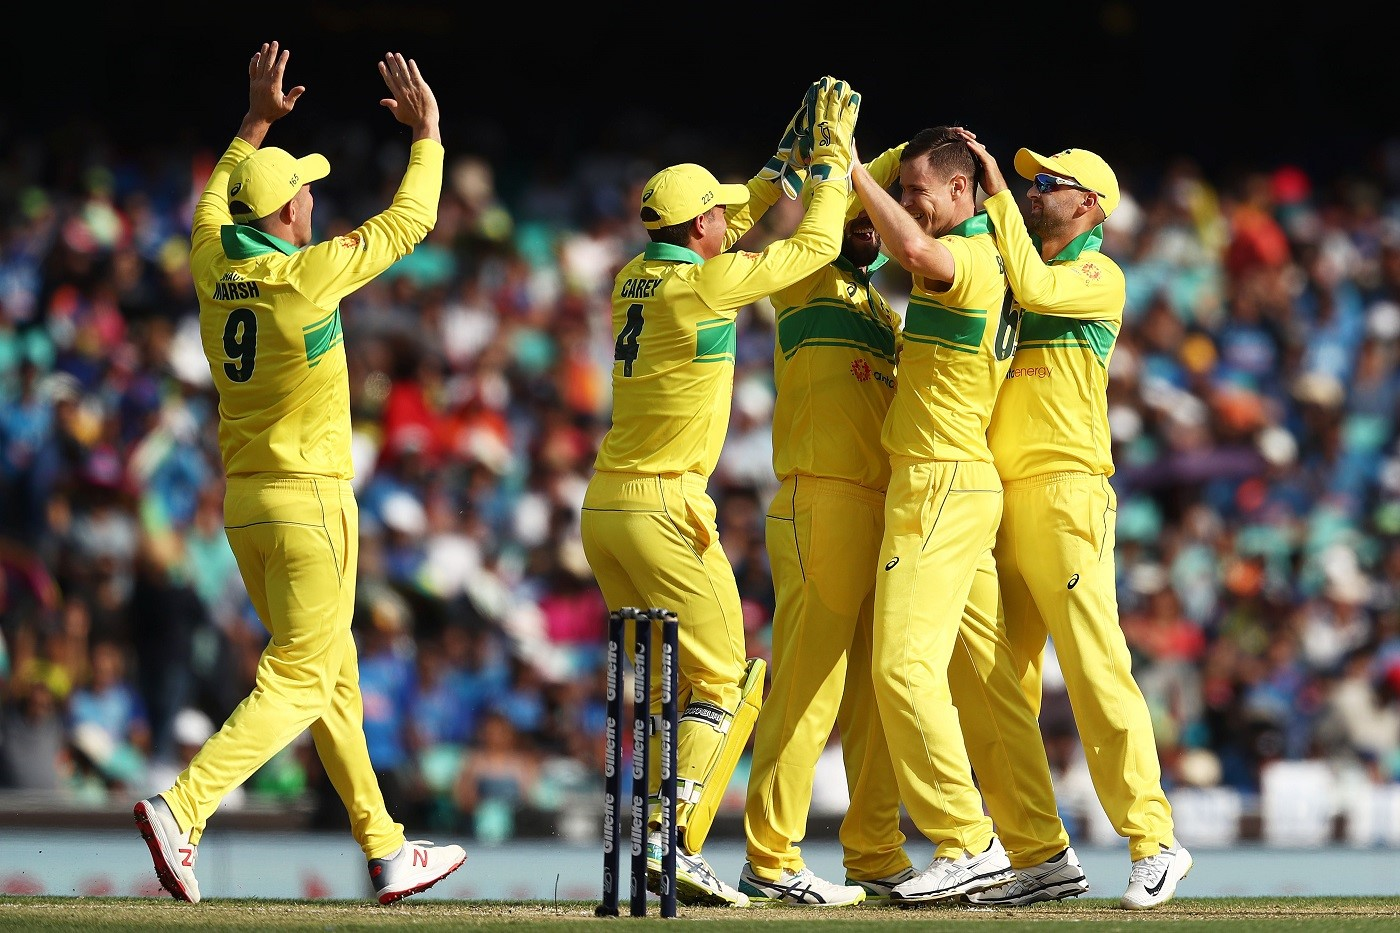 australia got wickets